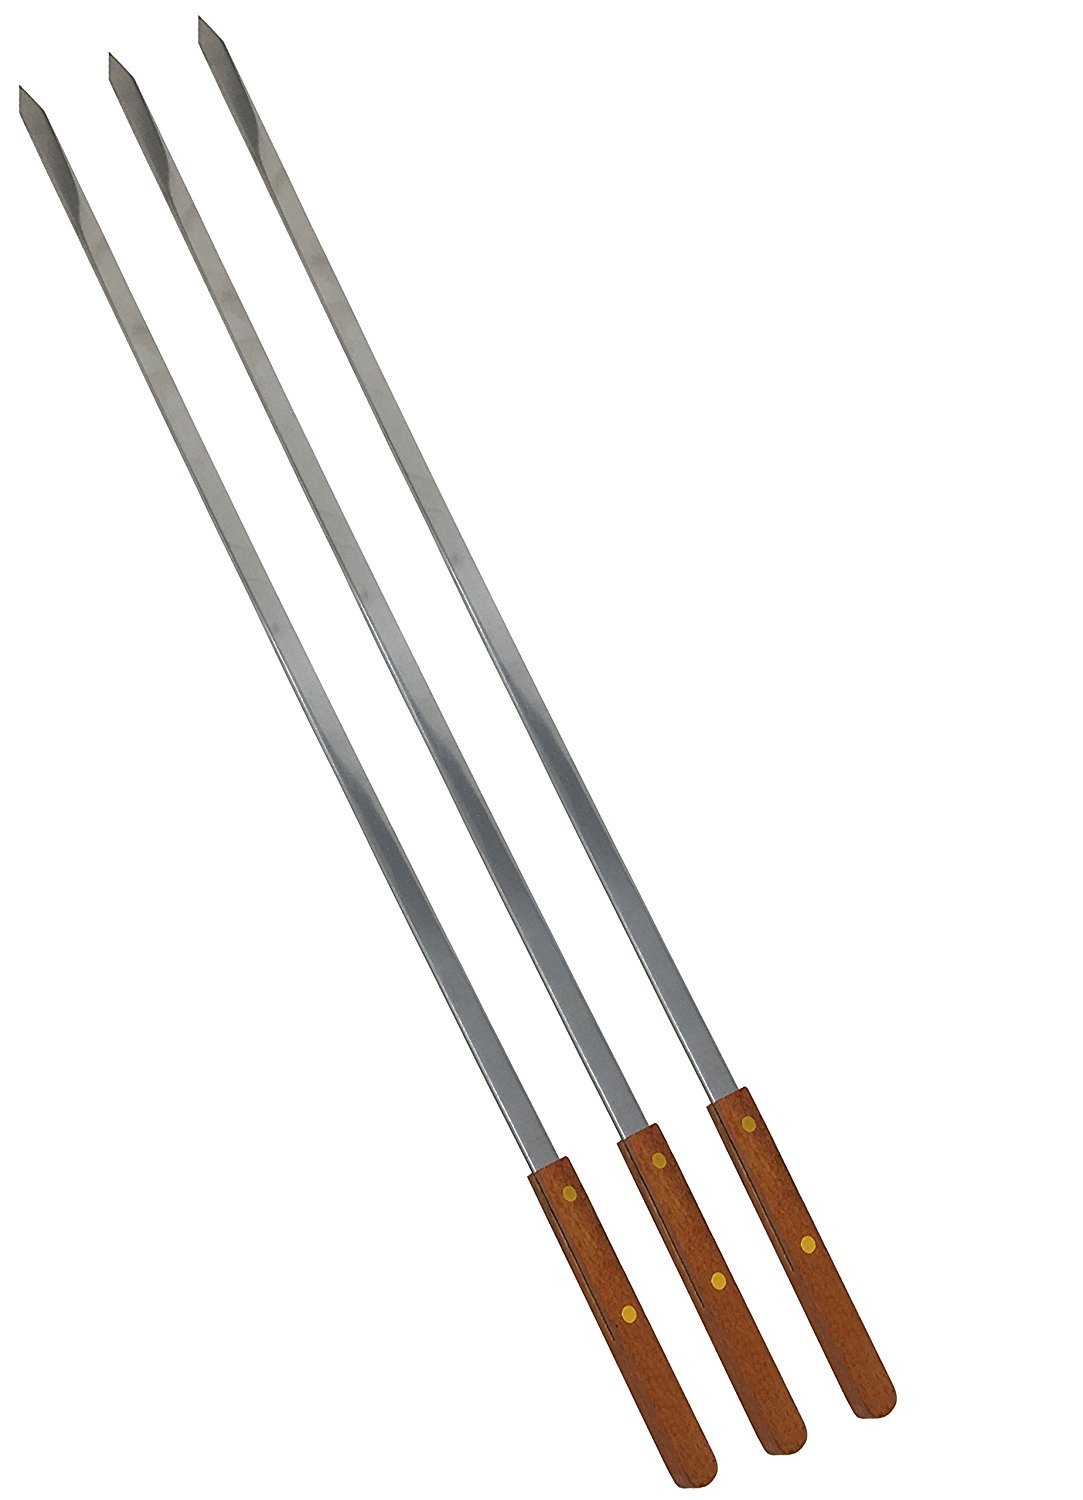 Unique Imports #1 Stainless Steel Wooden Handle BBQ Skewers for Shish Kebab Turkish Grills & Koubideh Brazilian-style BBQ - 25 Inch Long 1/2 Inch Wide (12)